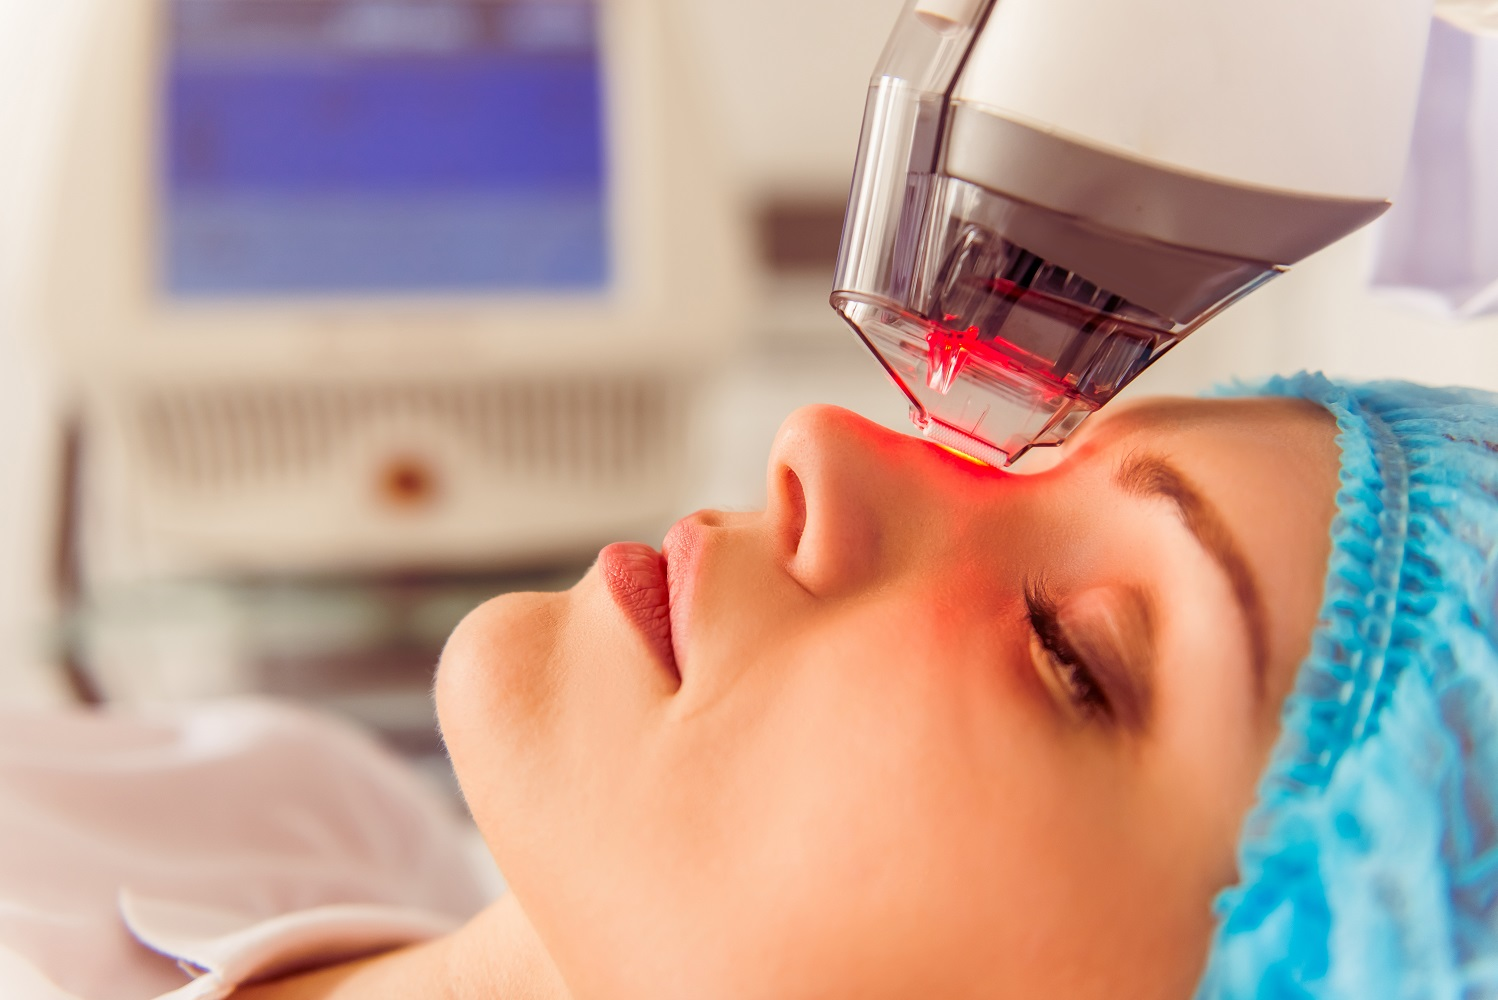 What is Laser Acupuncture & Laser Hair Removal?